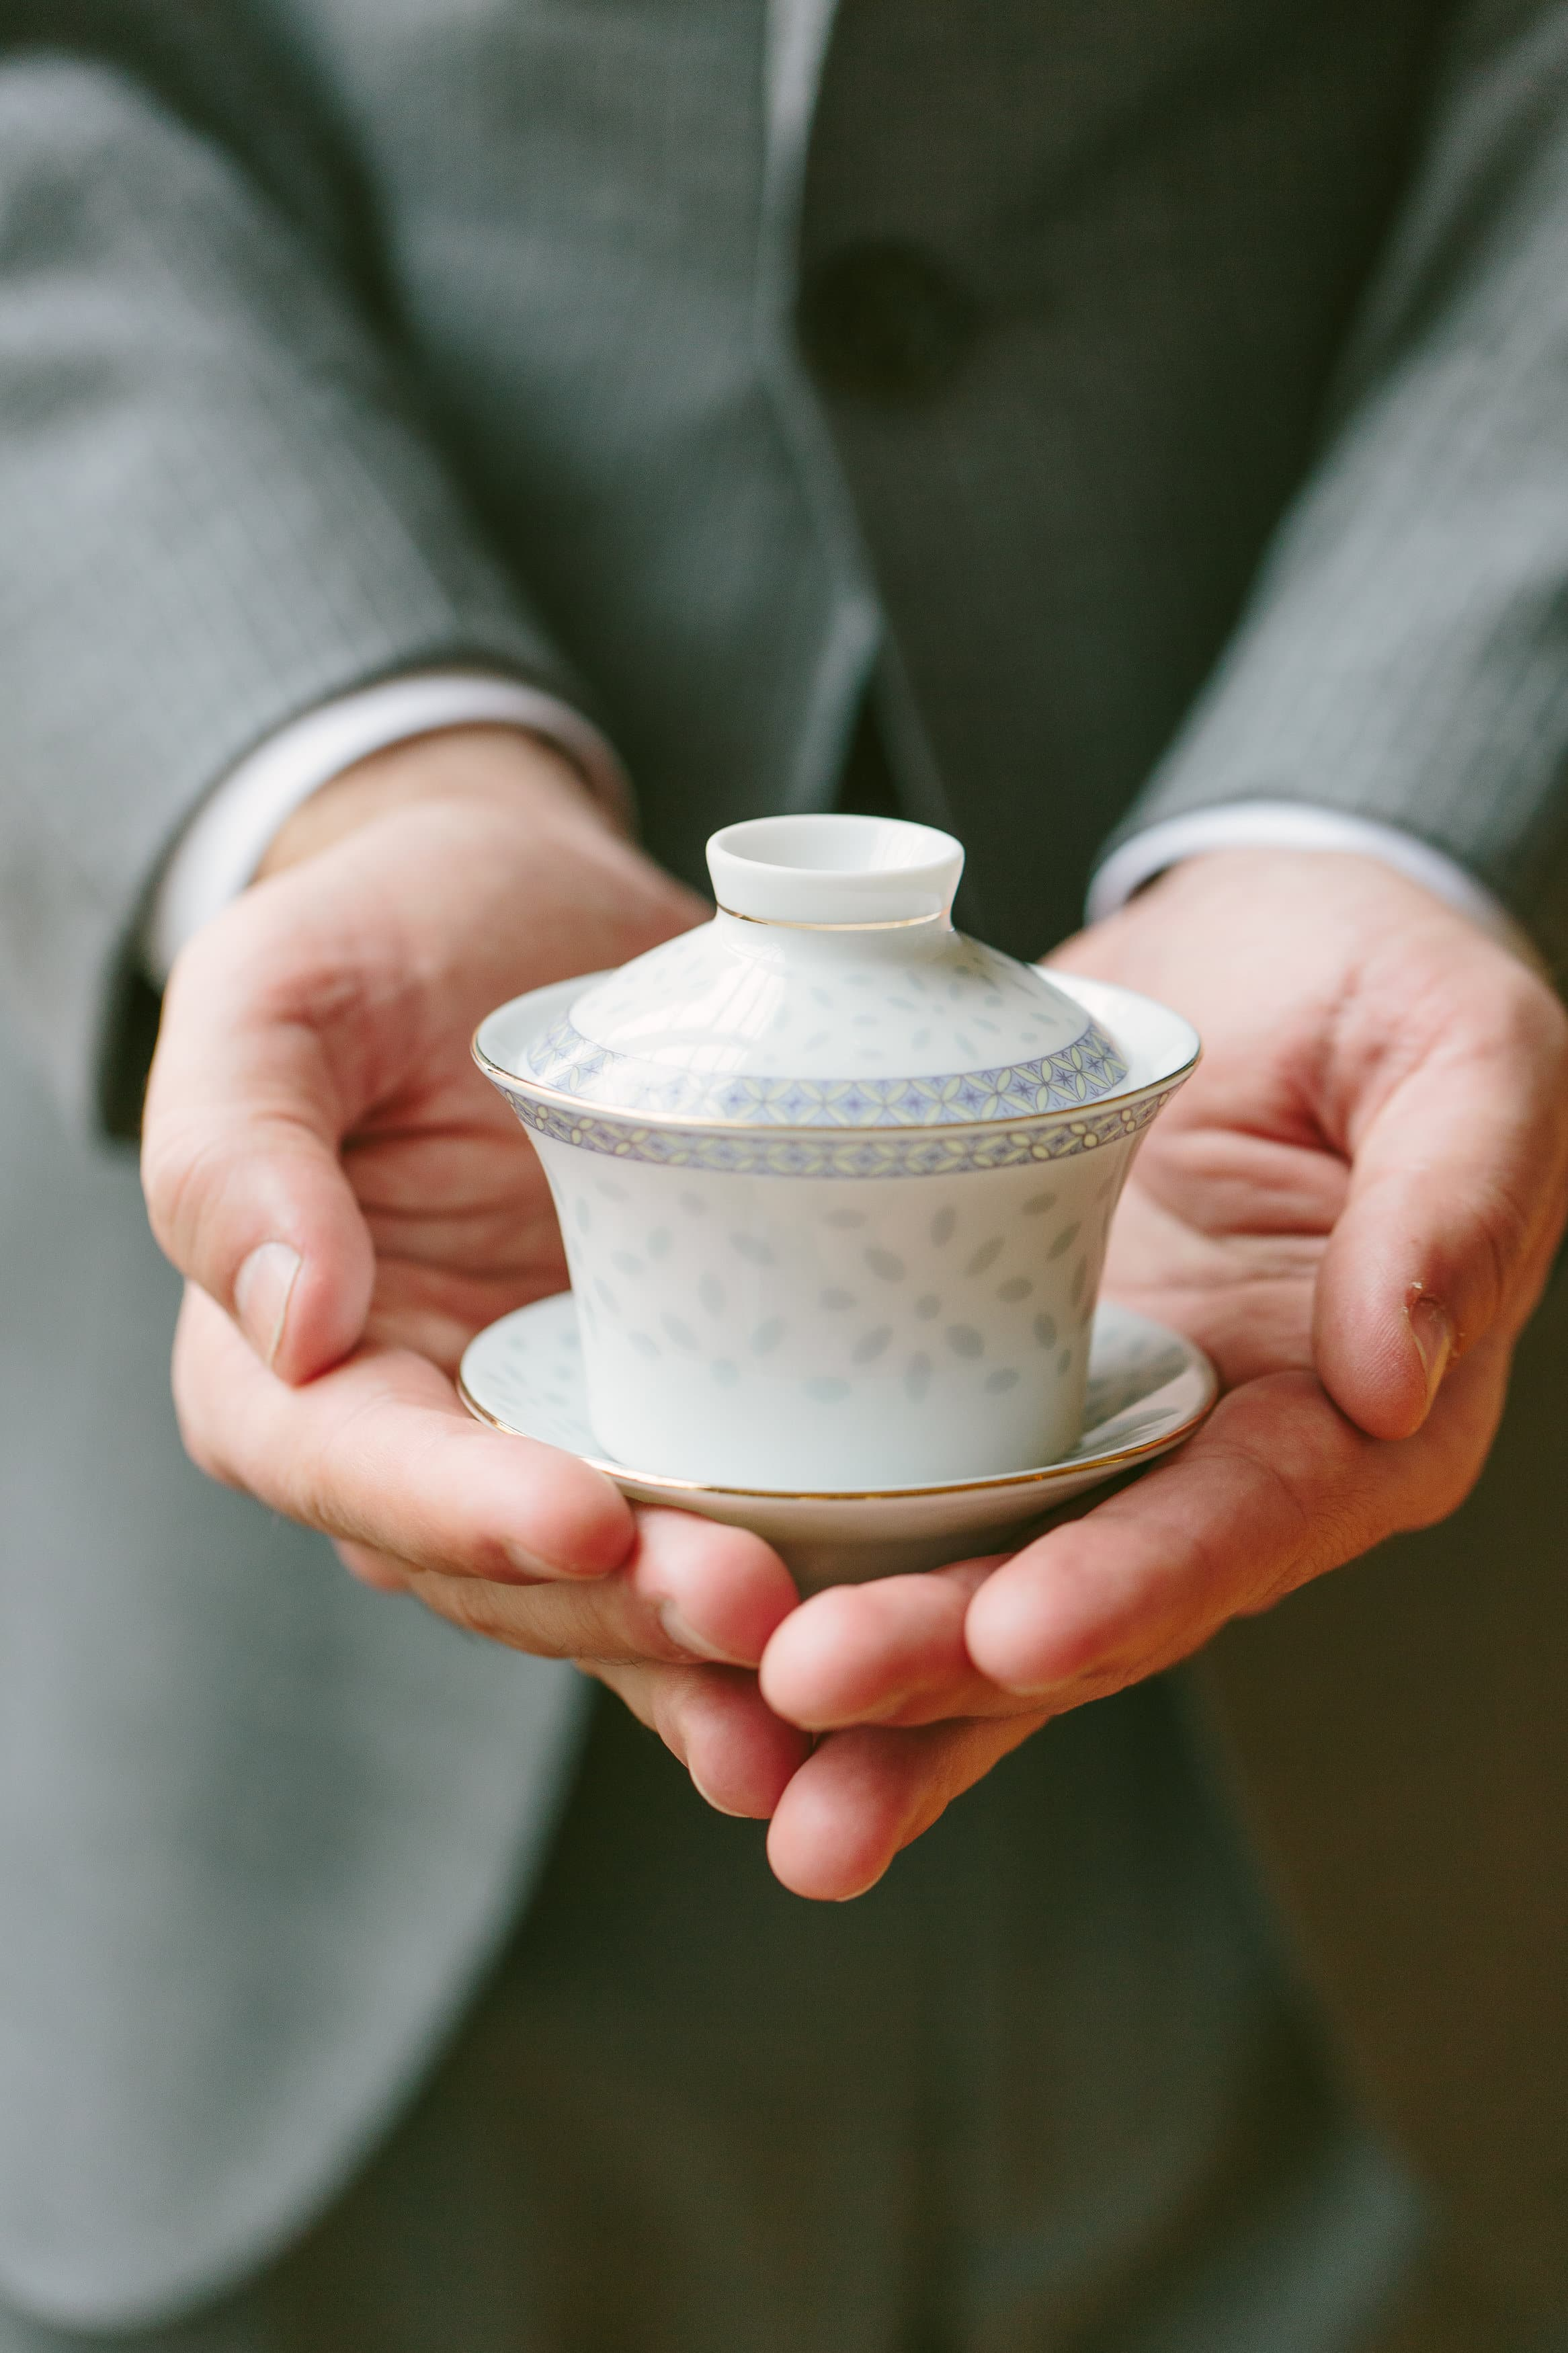 Tony holding the wedding gaiwan